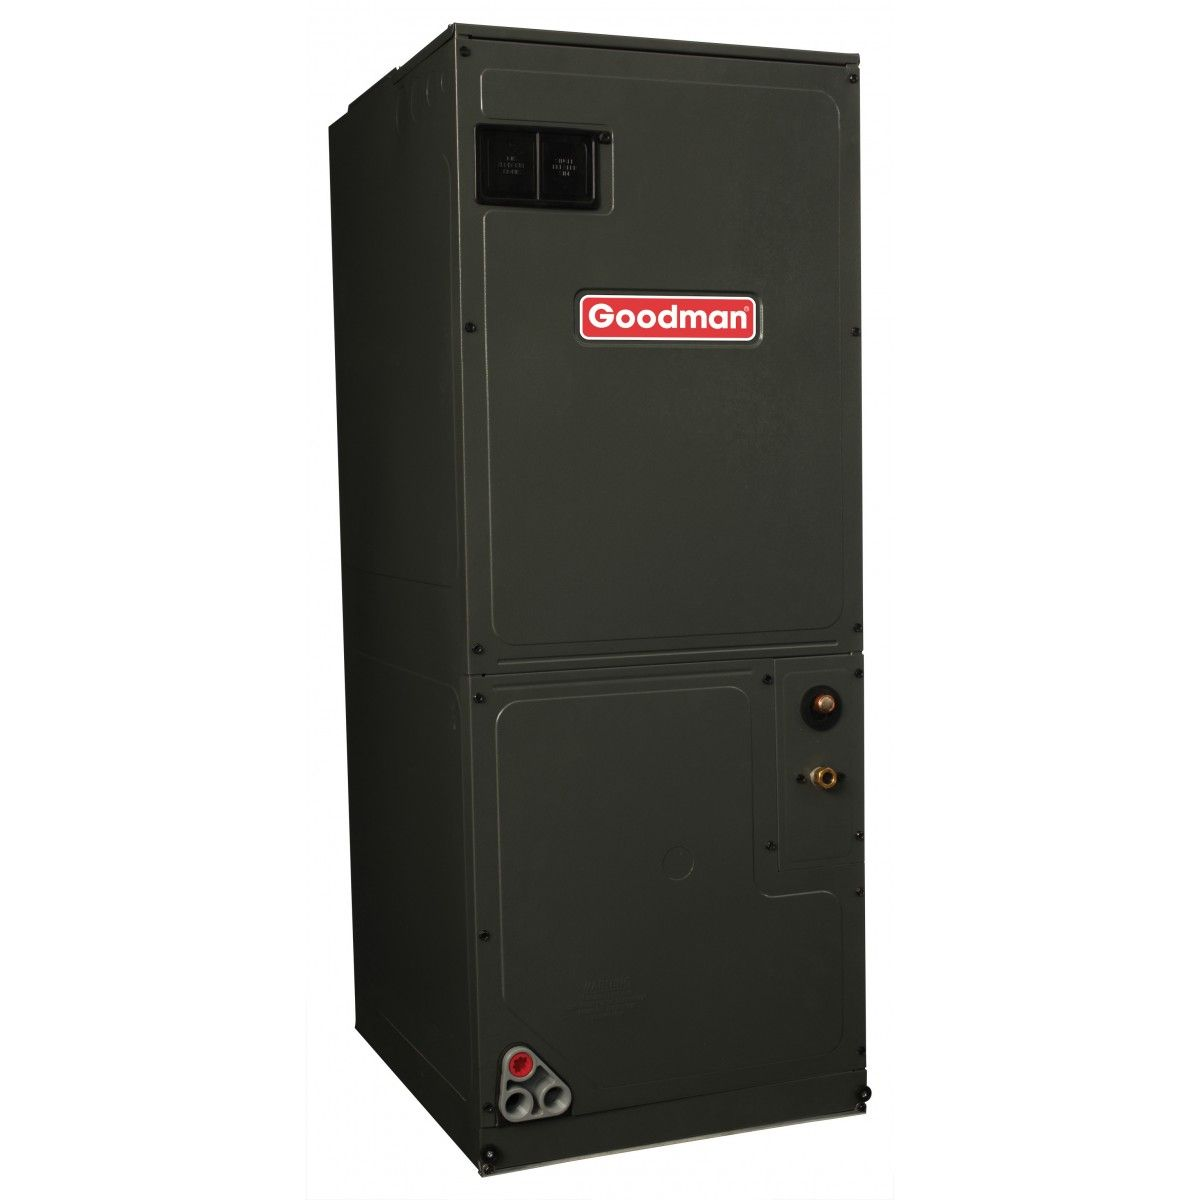 Goodman 1 5 Ton 16 Seer Heat Pump System Star Energy